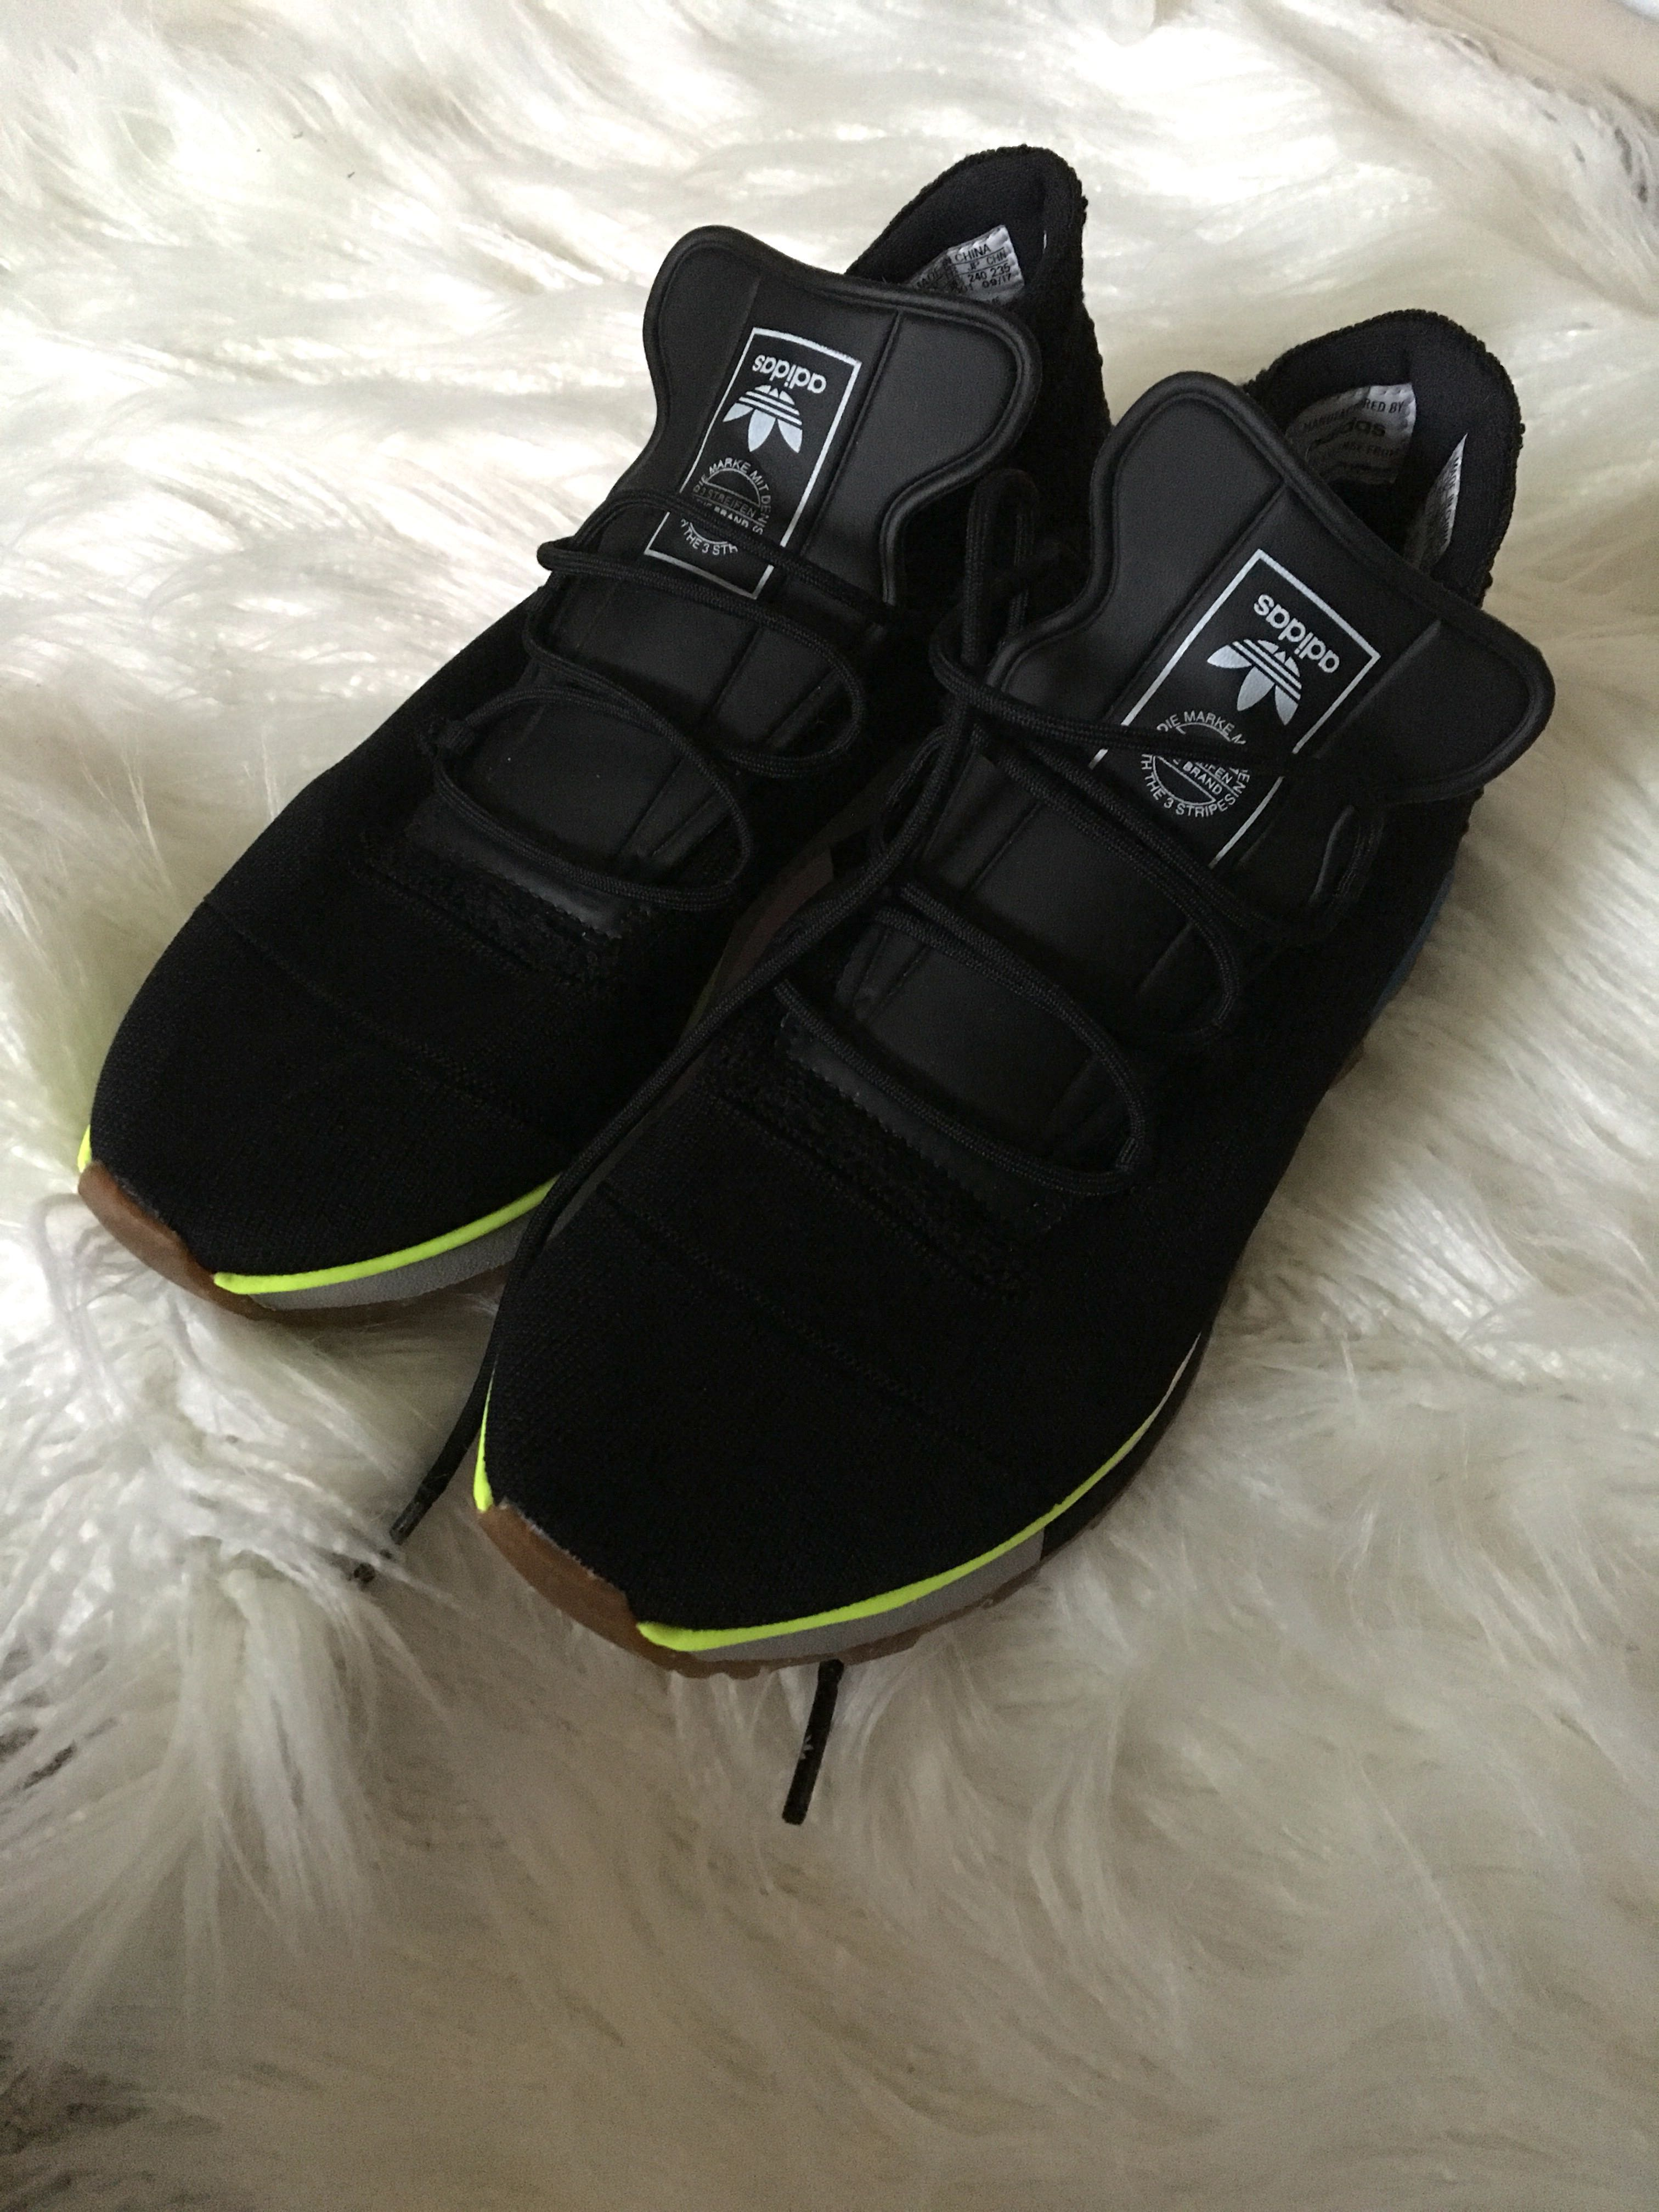 check out 3aed5 0e7c1 adidas alexander wang aw run mid